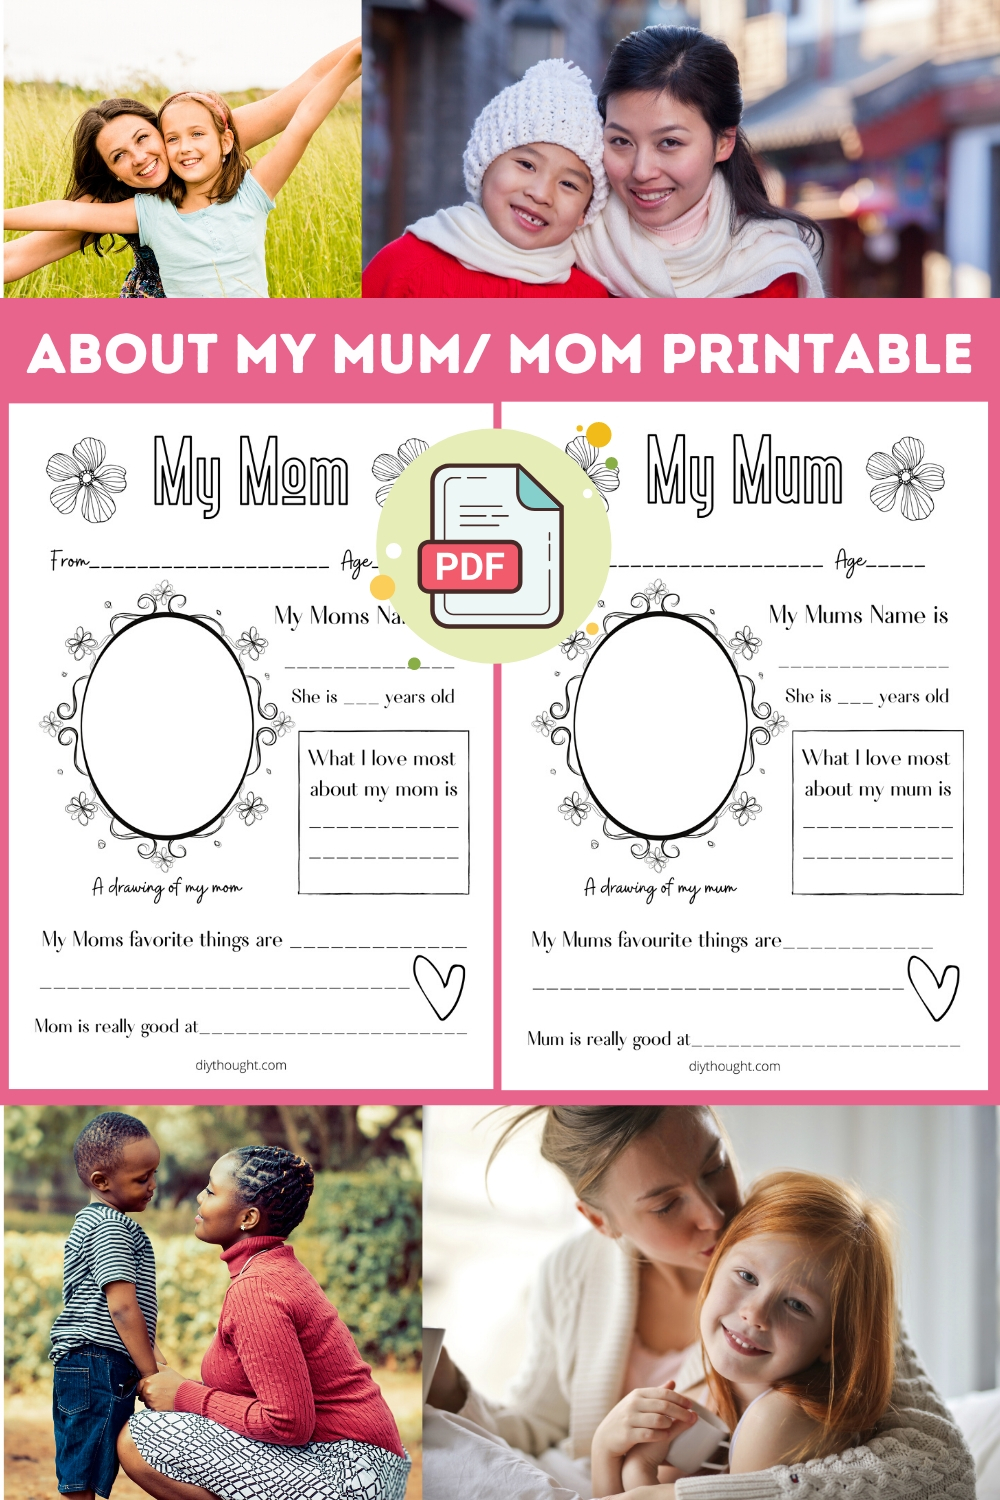 about my mum/ mom printable